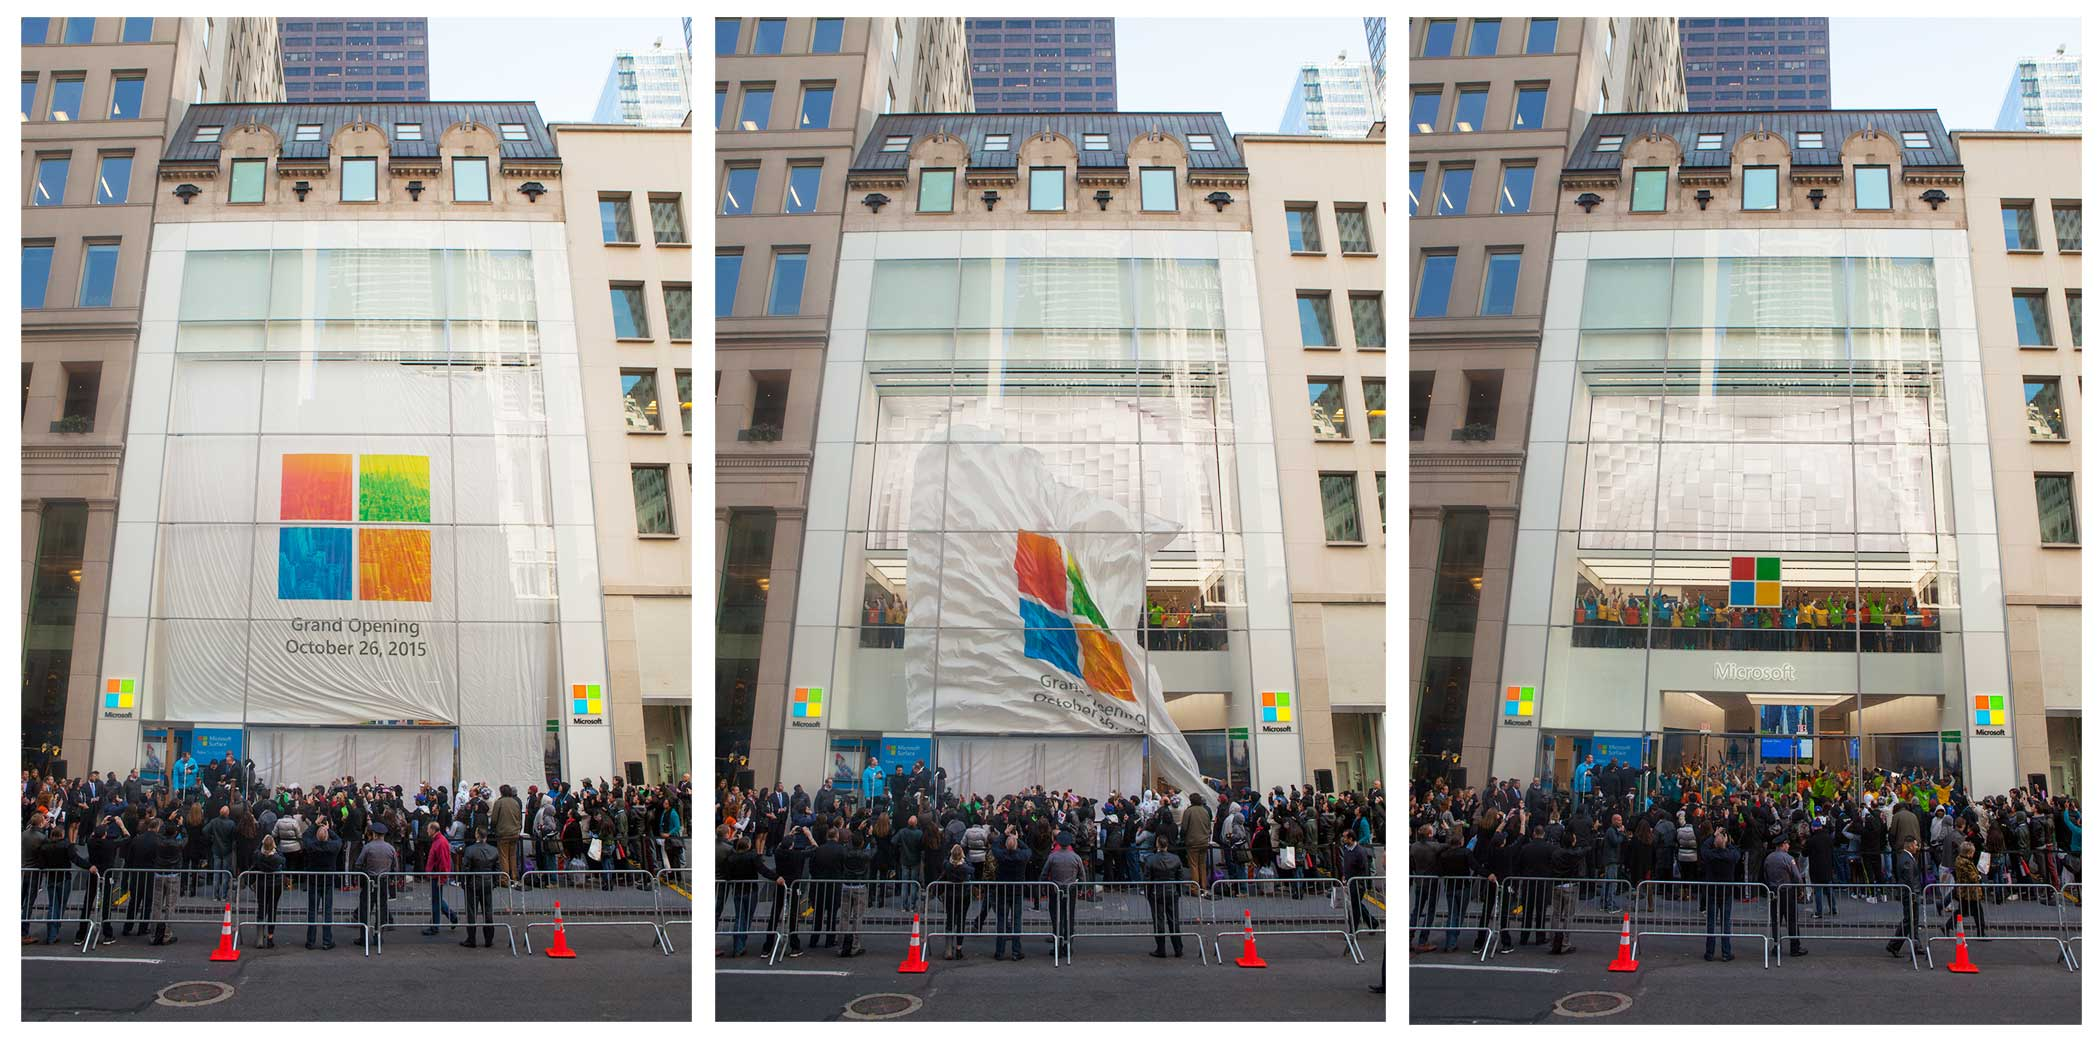 The flag covering Microsoft's Flagship Store is dropped as the store opens to the public on Oct. 26, 2015.